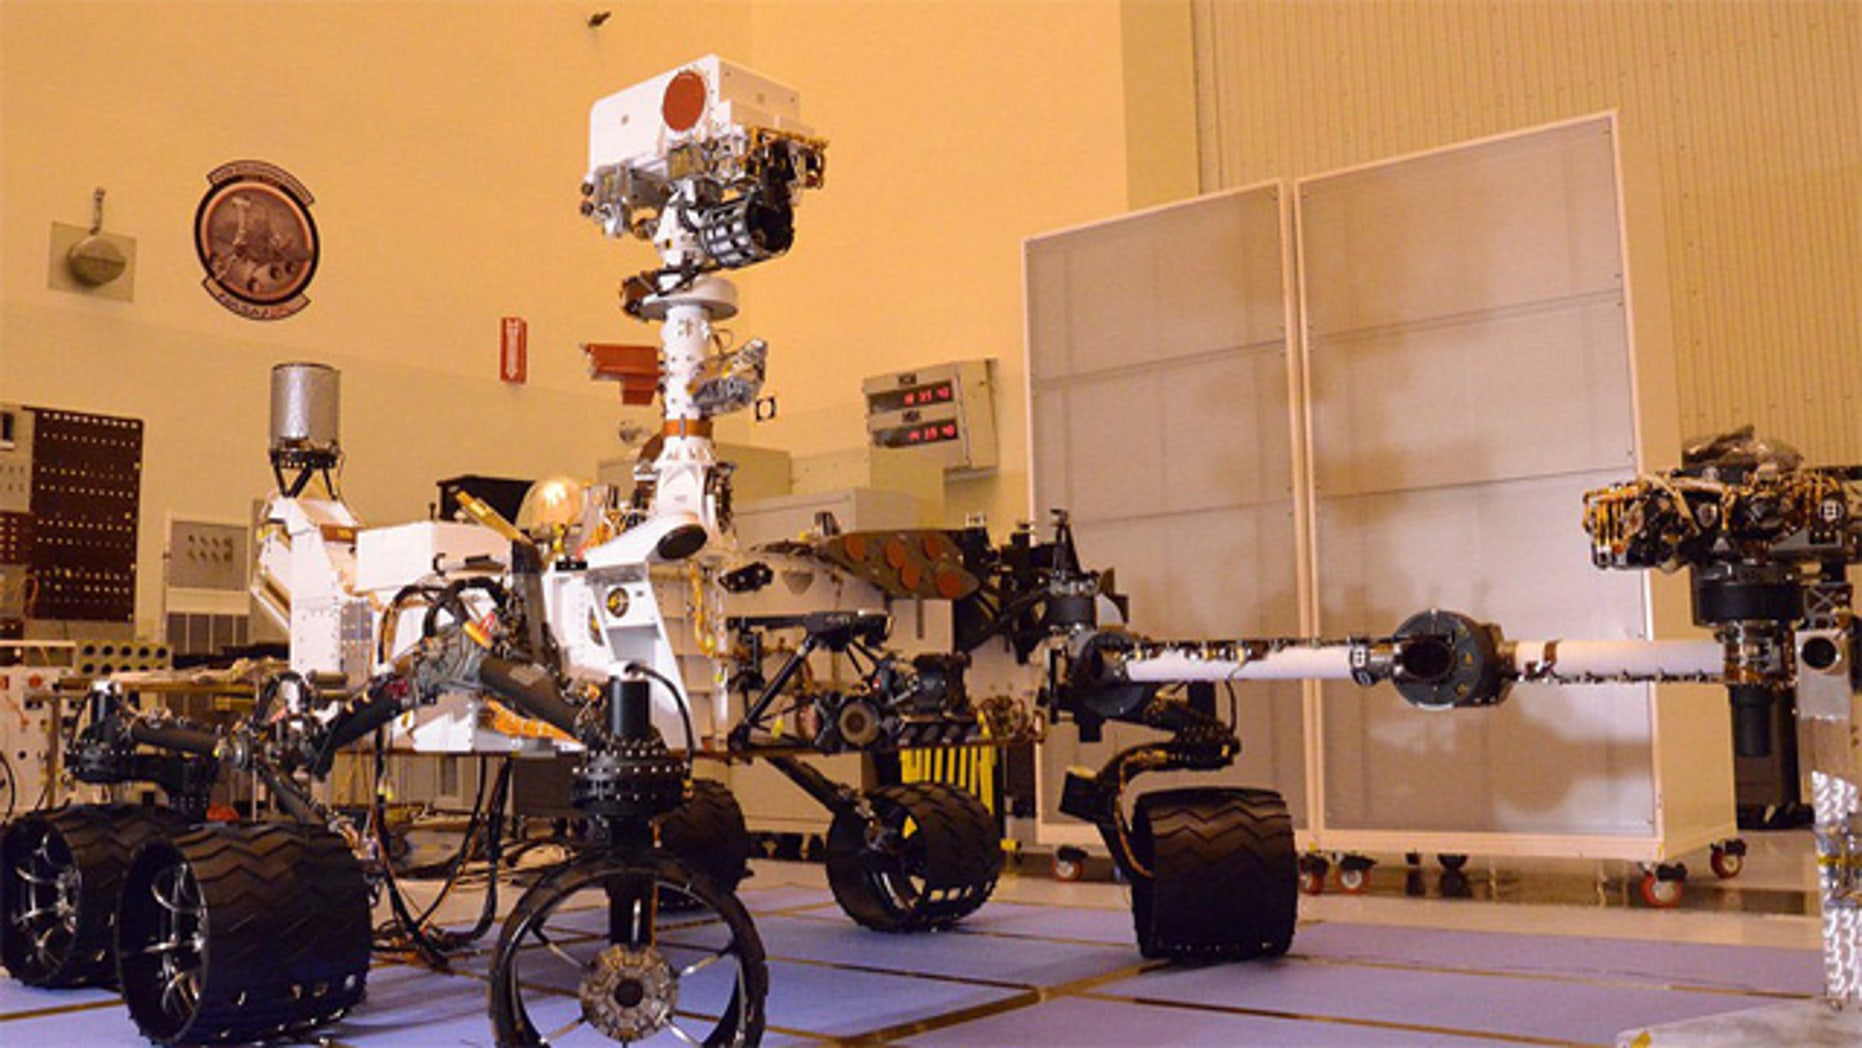 NASA's Curiosity Mars Science Laboratory as seen on Aug. 12, 2011 at the Kennedy Space Center in Florida. The next time the rover will be seen in this configuration is after it lands on Mars.